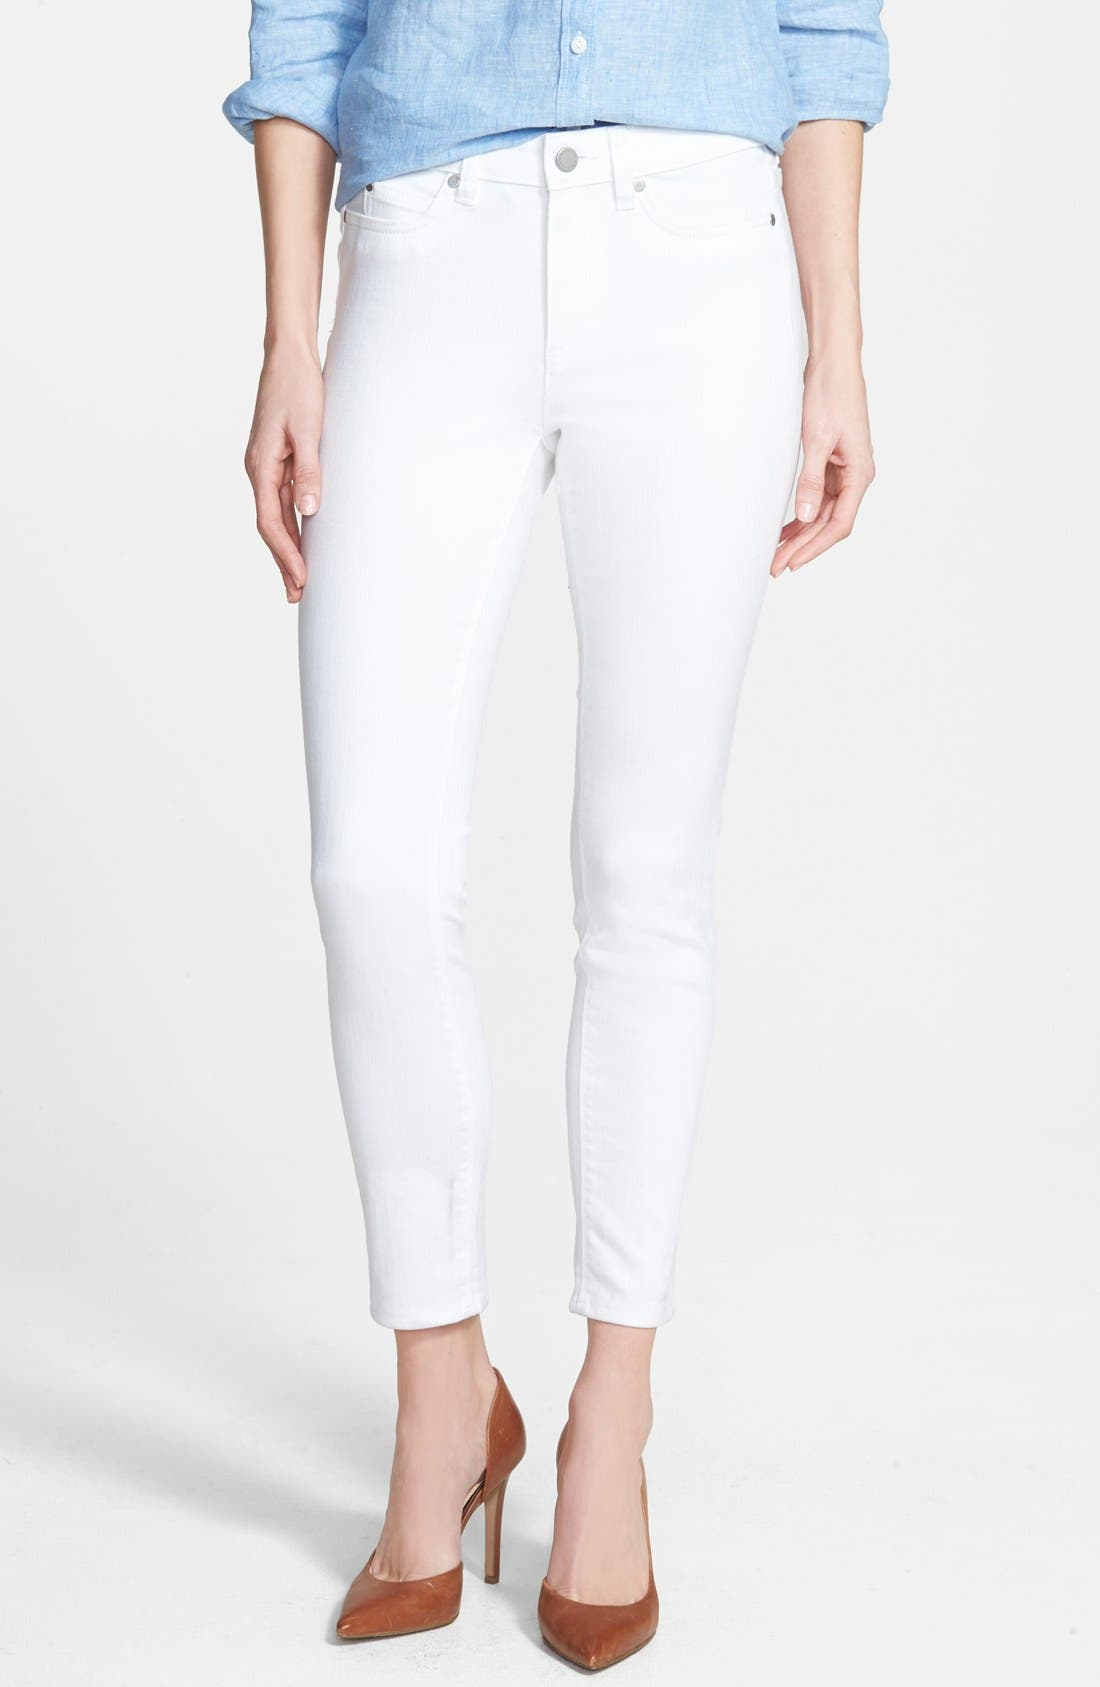 Alternate Image 1 Selected - Vince Camuto Skinny Jeans (Ultra White)